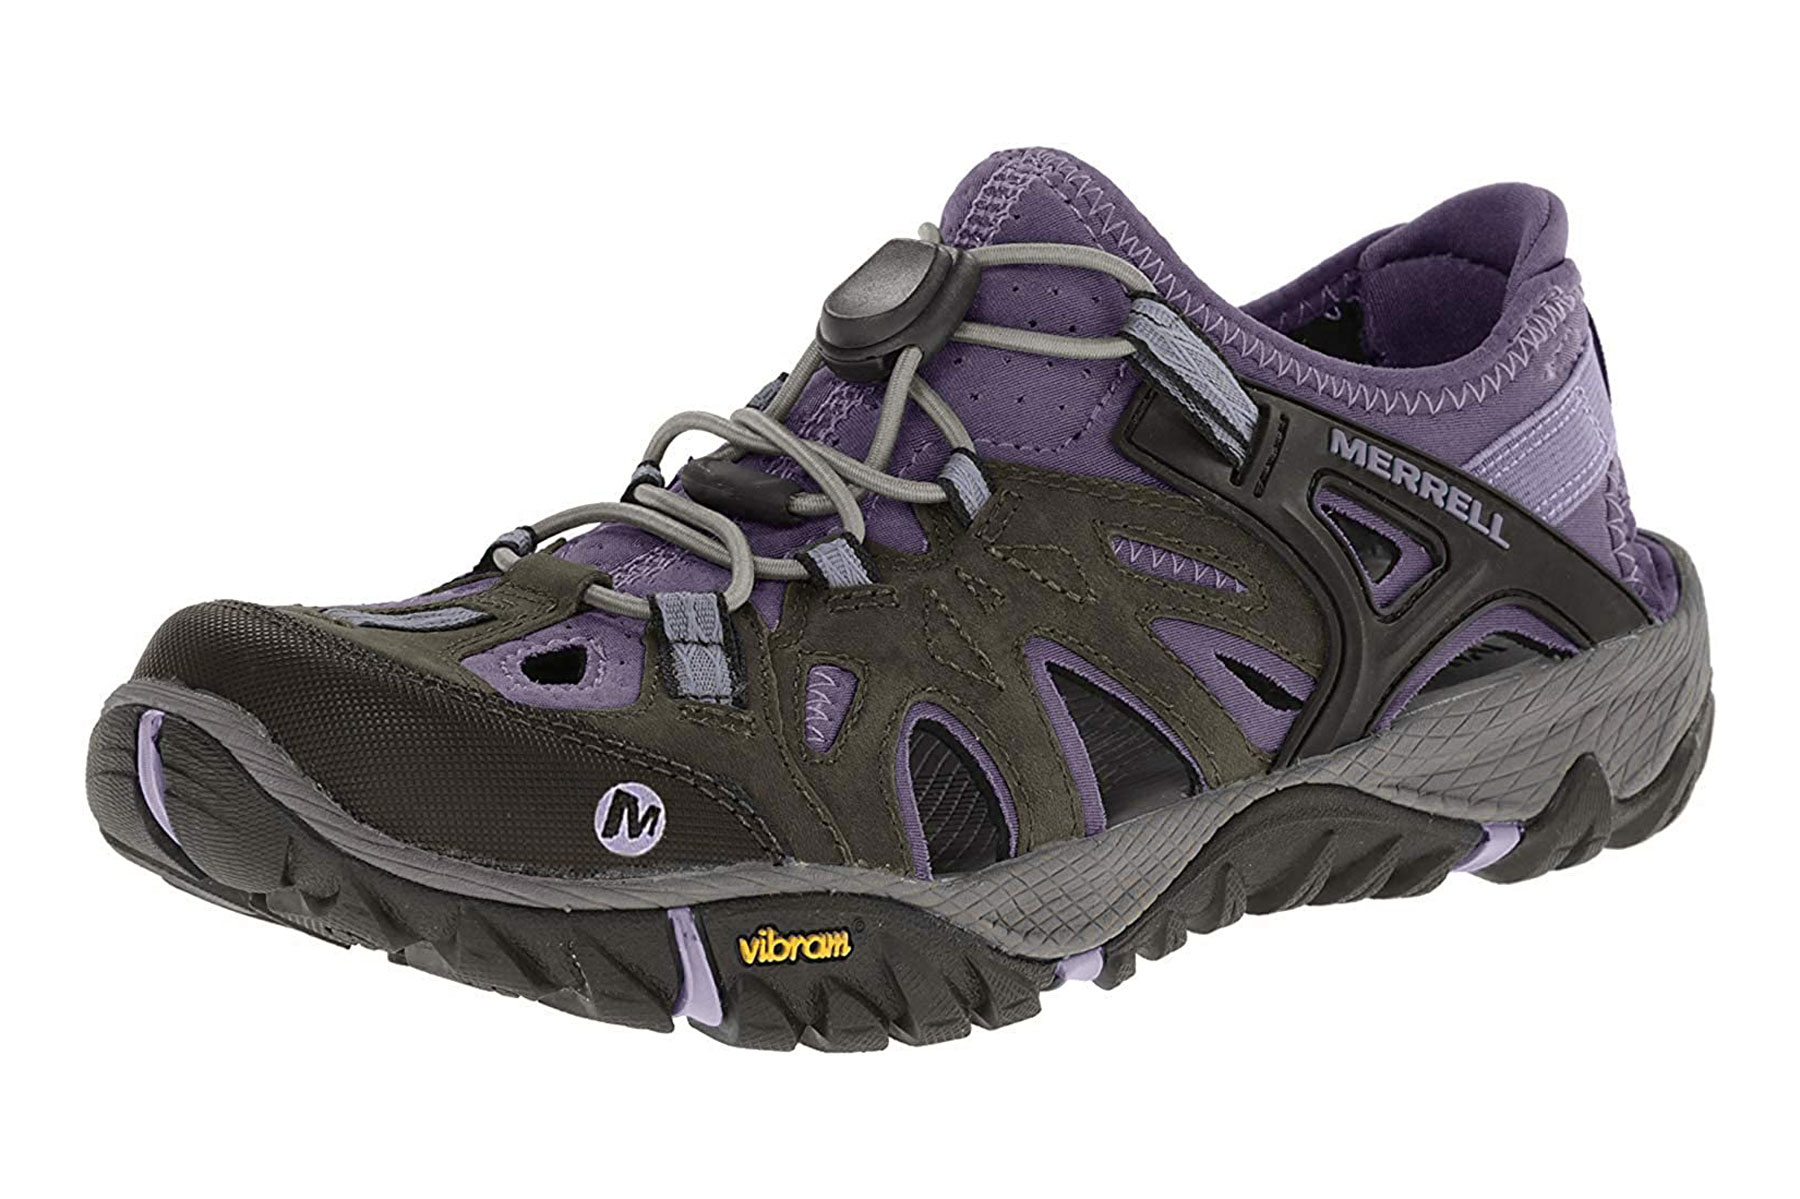 Grey and purple water shoes